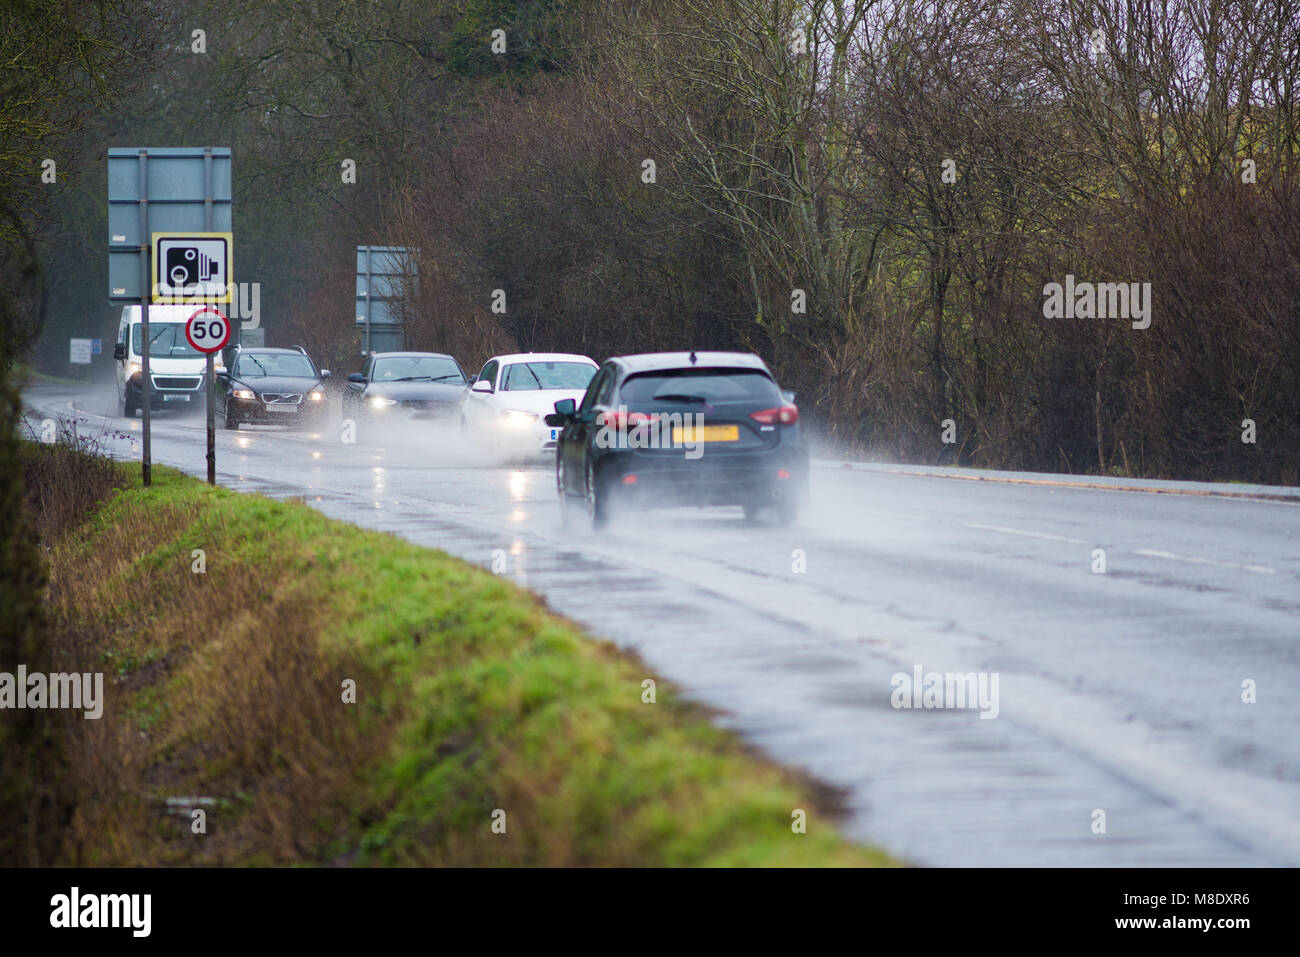 cars driving along water logged road with spray and rain and camera and 50 mph speed warning sign - Stock Image